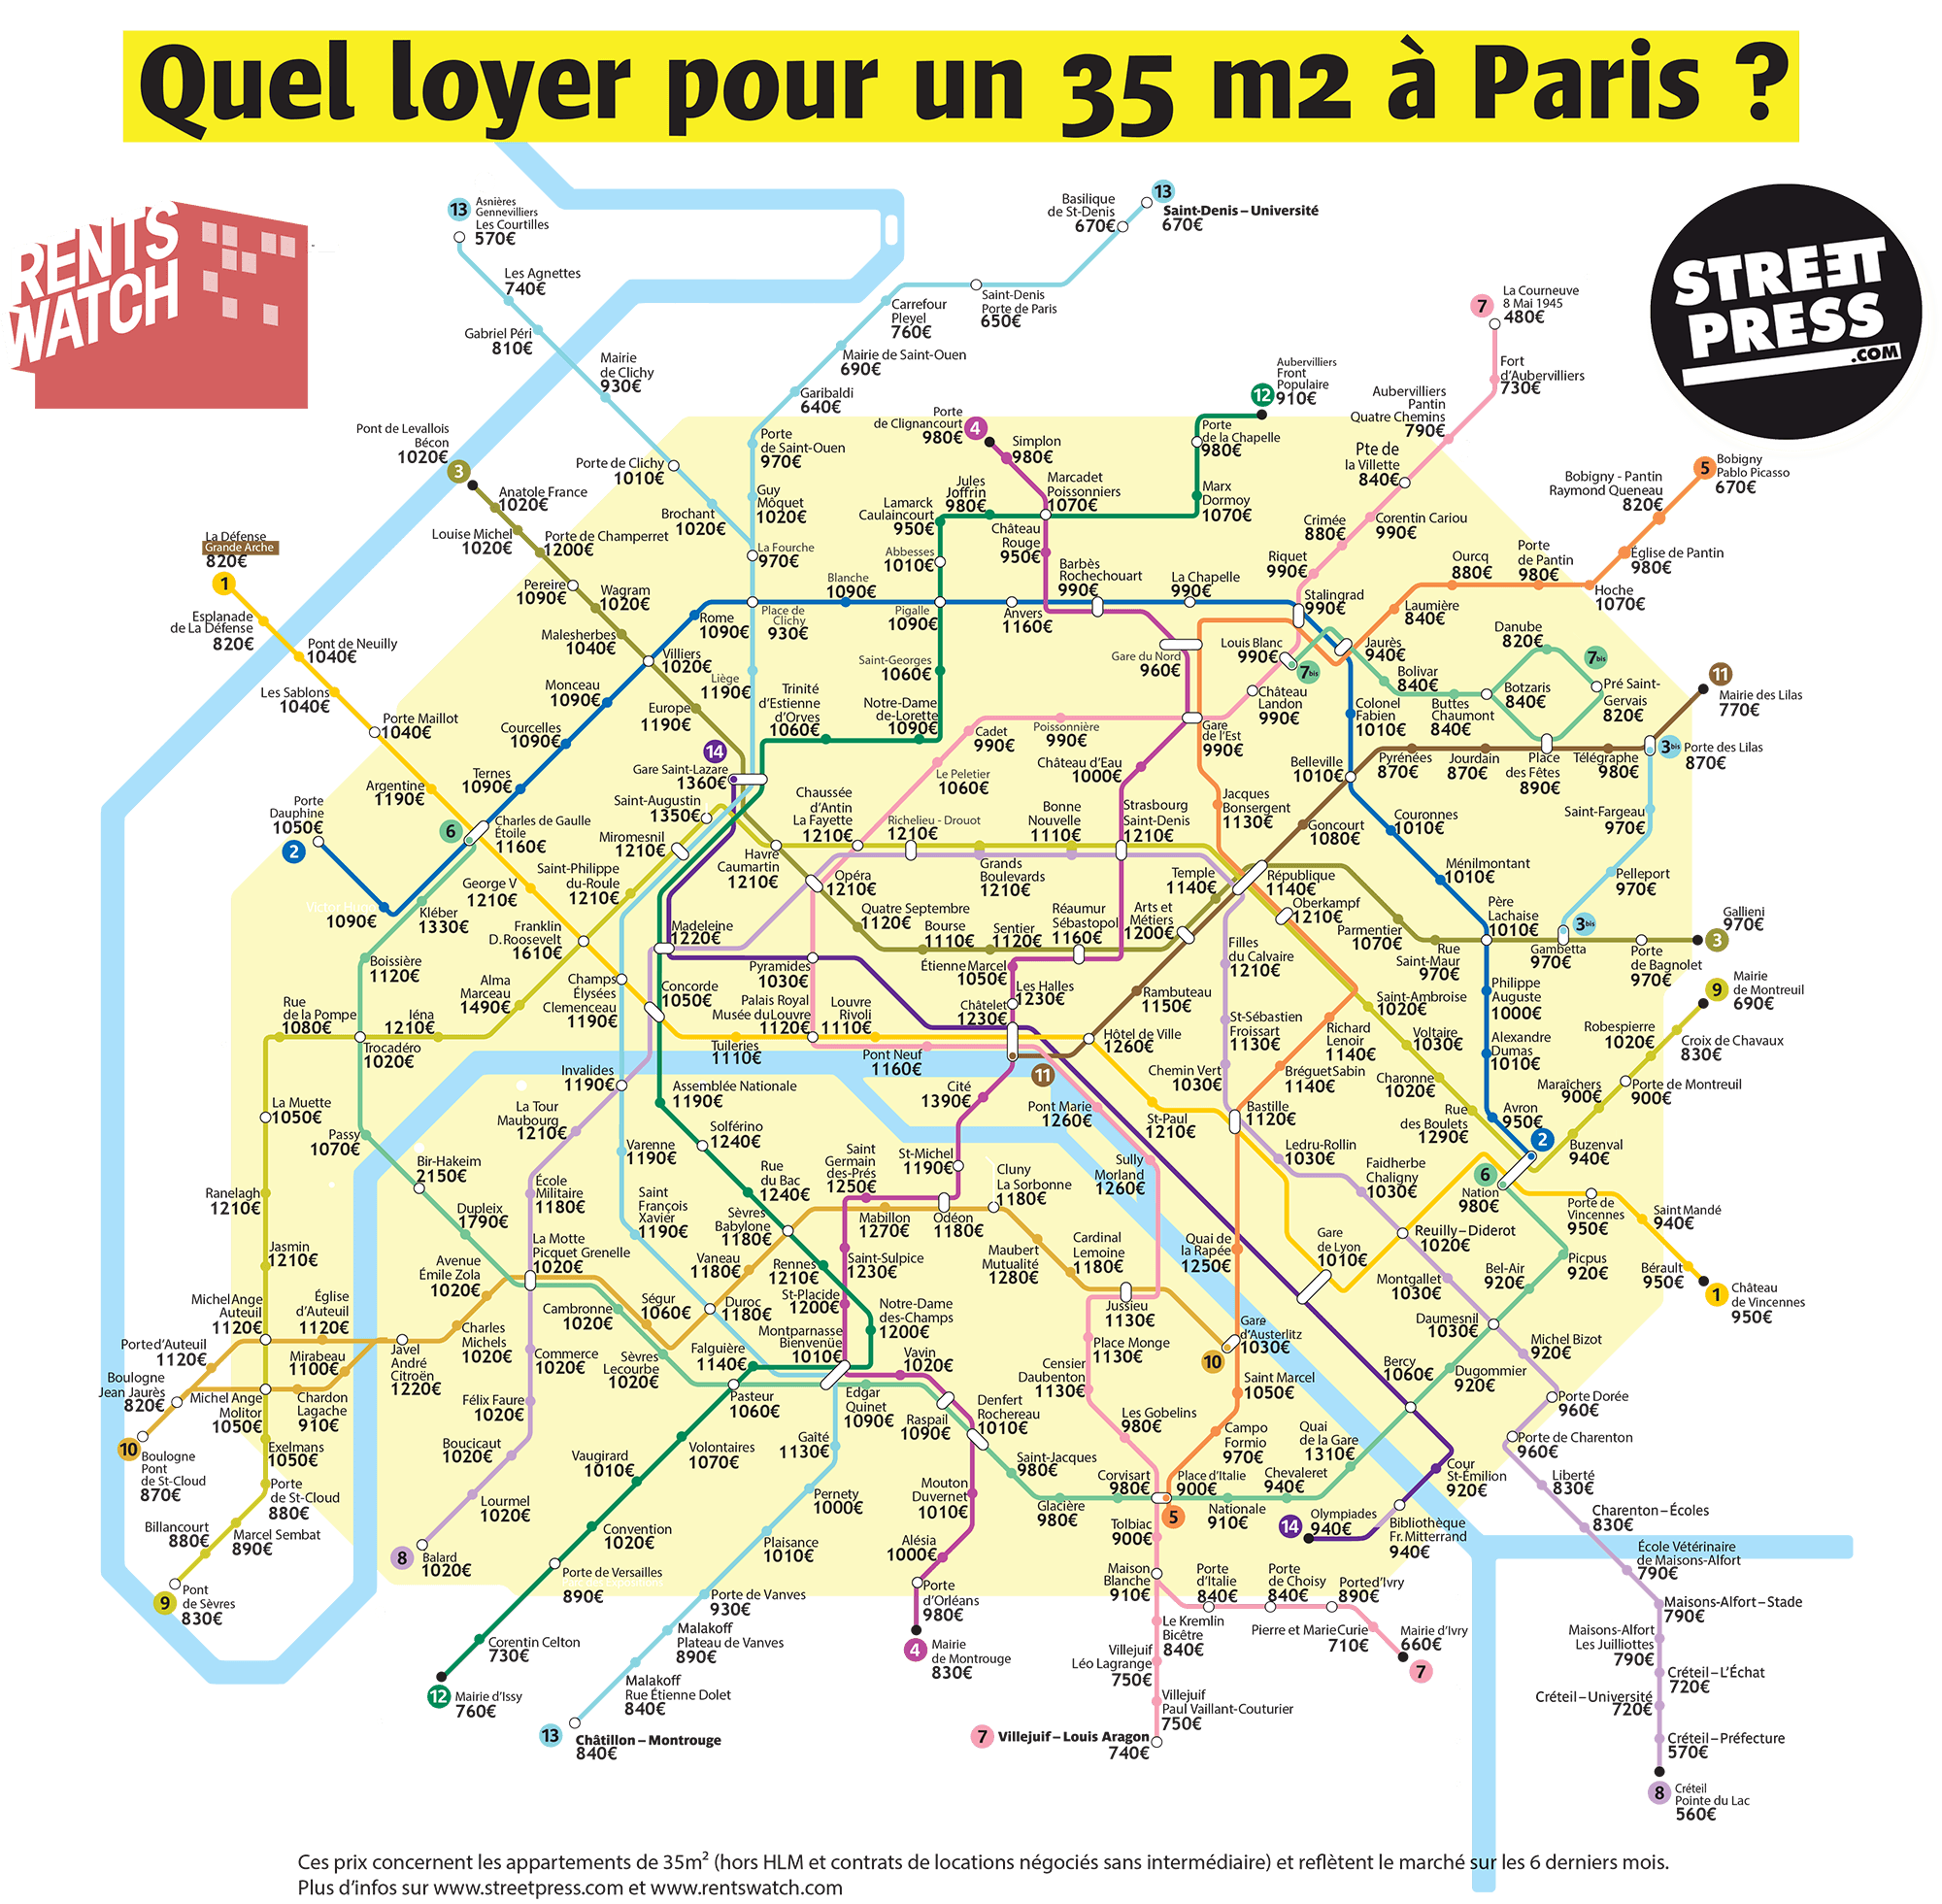 paris quel loyer pour chaque station de m tro se loger le parisien etudiant. Black Bedroom Furniture Sets. Home Design Ideas